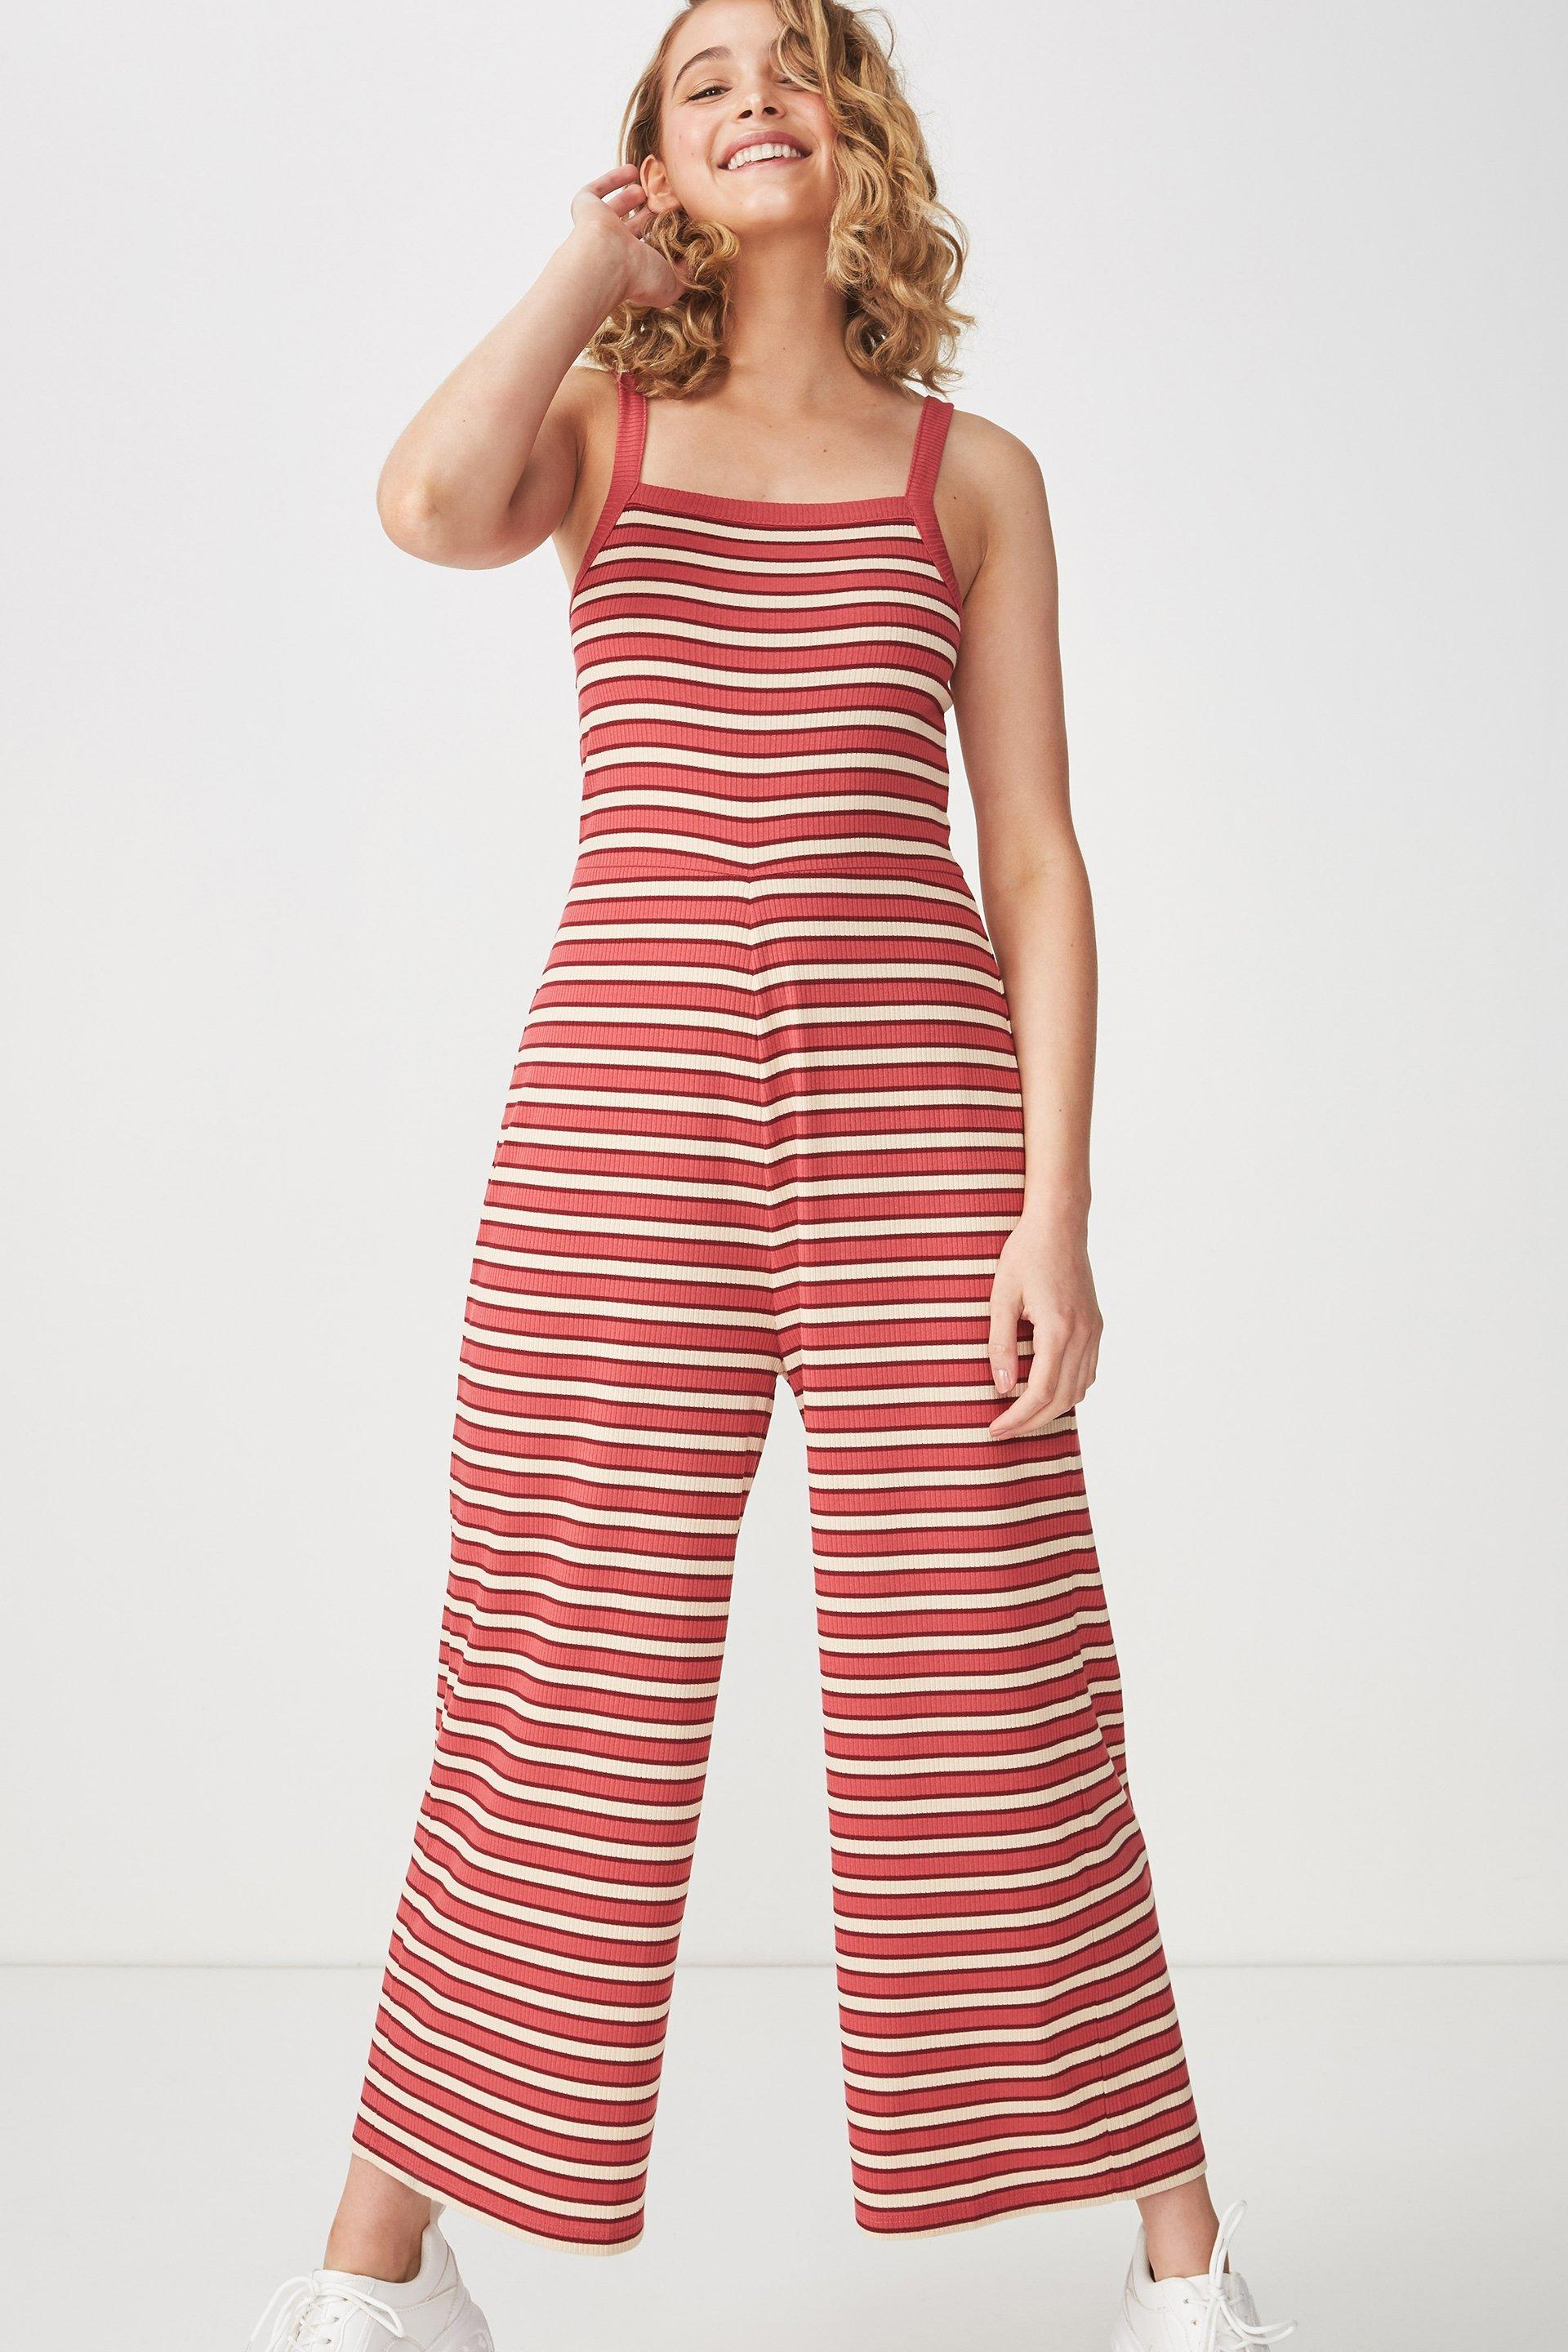 268fba1901b8 Valerie strappy wide leg jumpsuit - red stripe Cotton On Jumpsuits    Playsuits